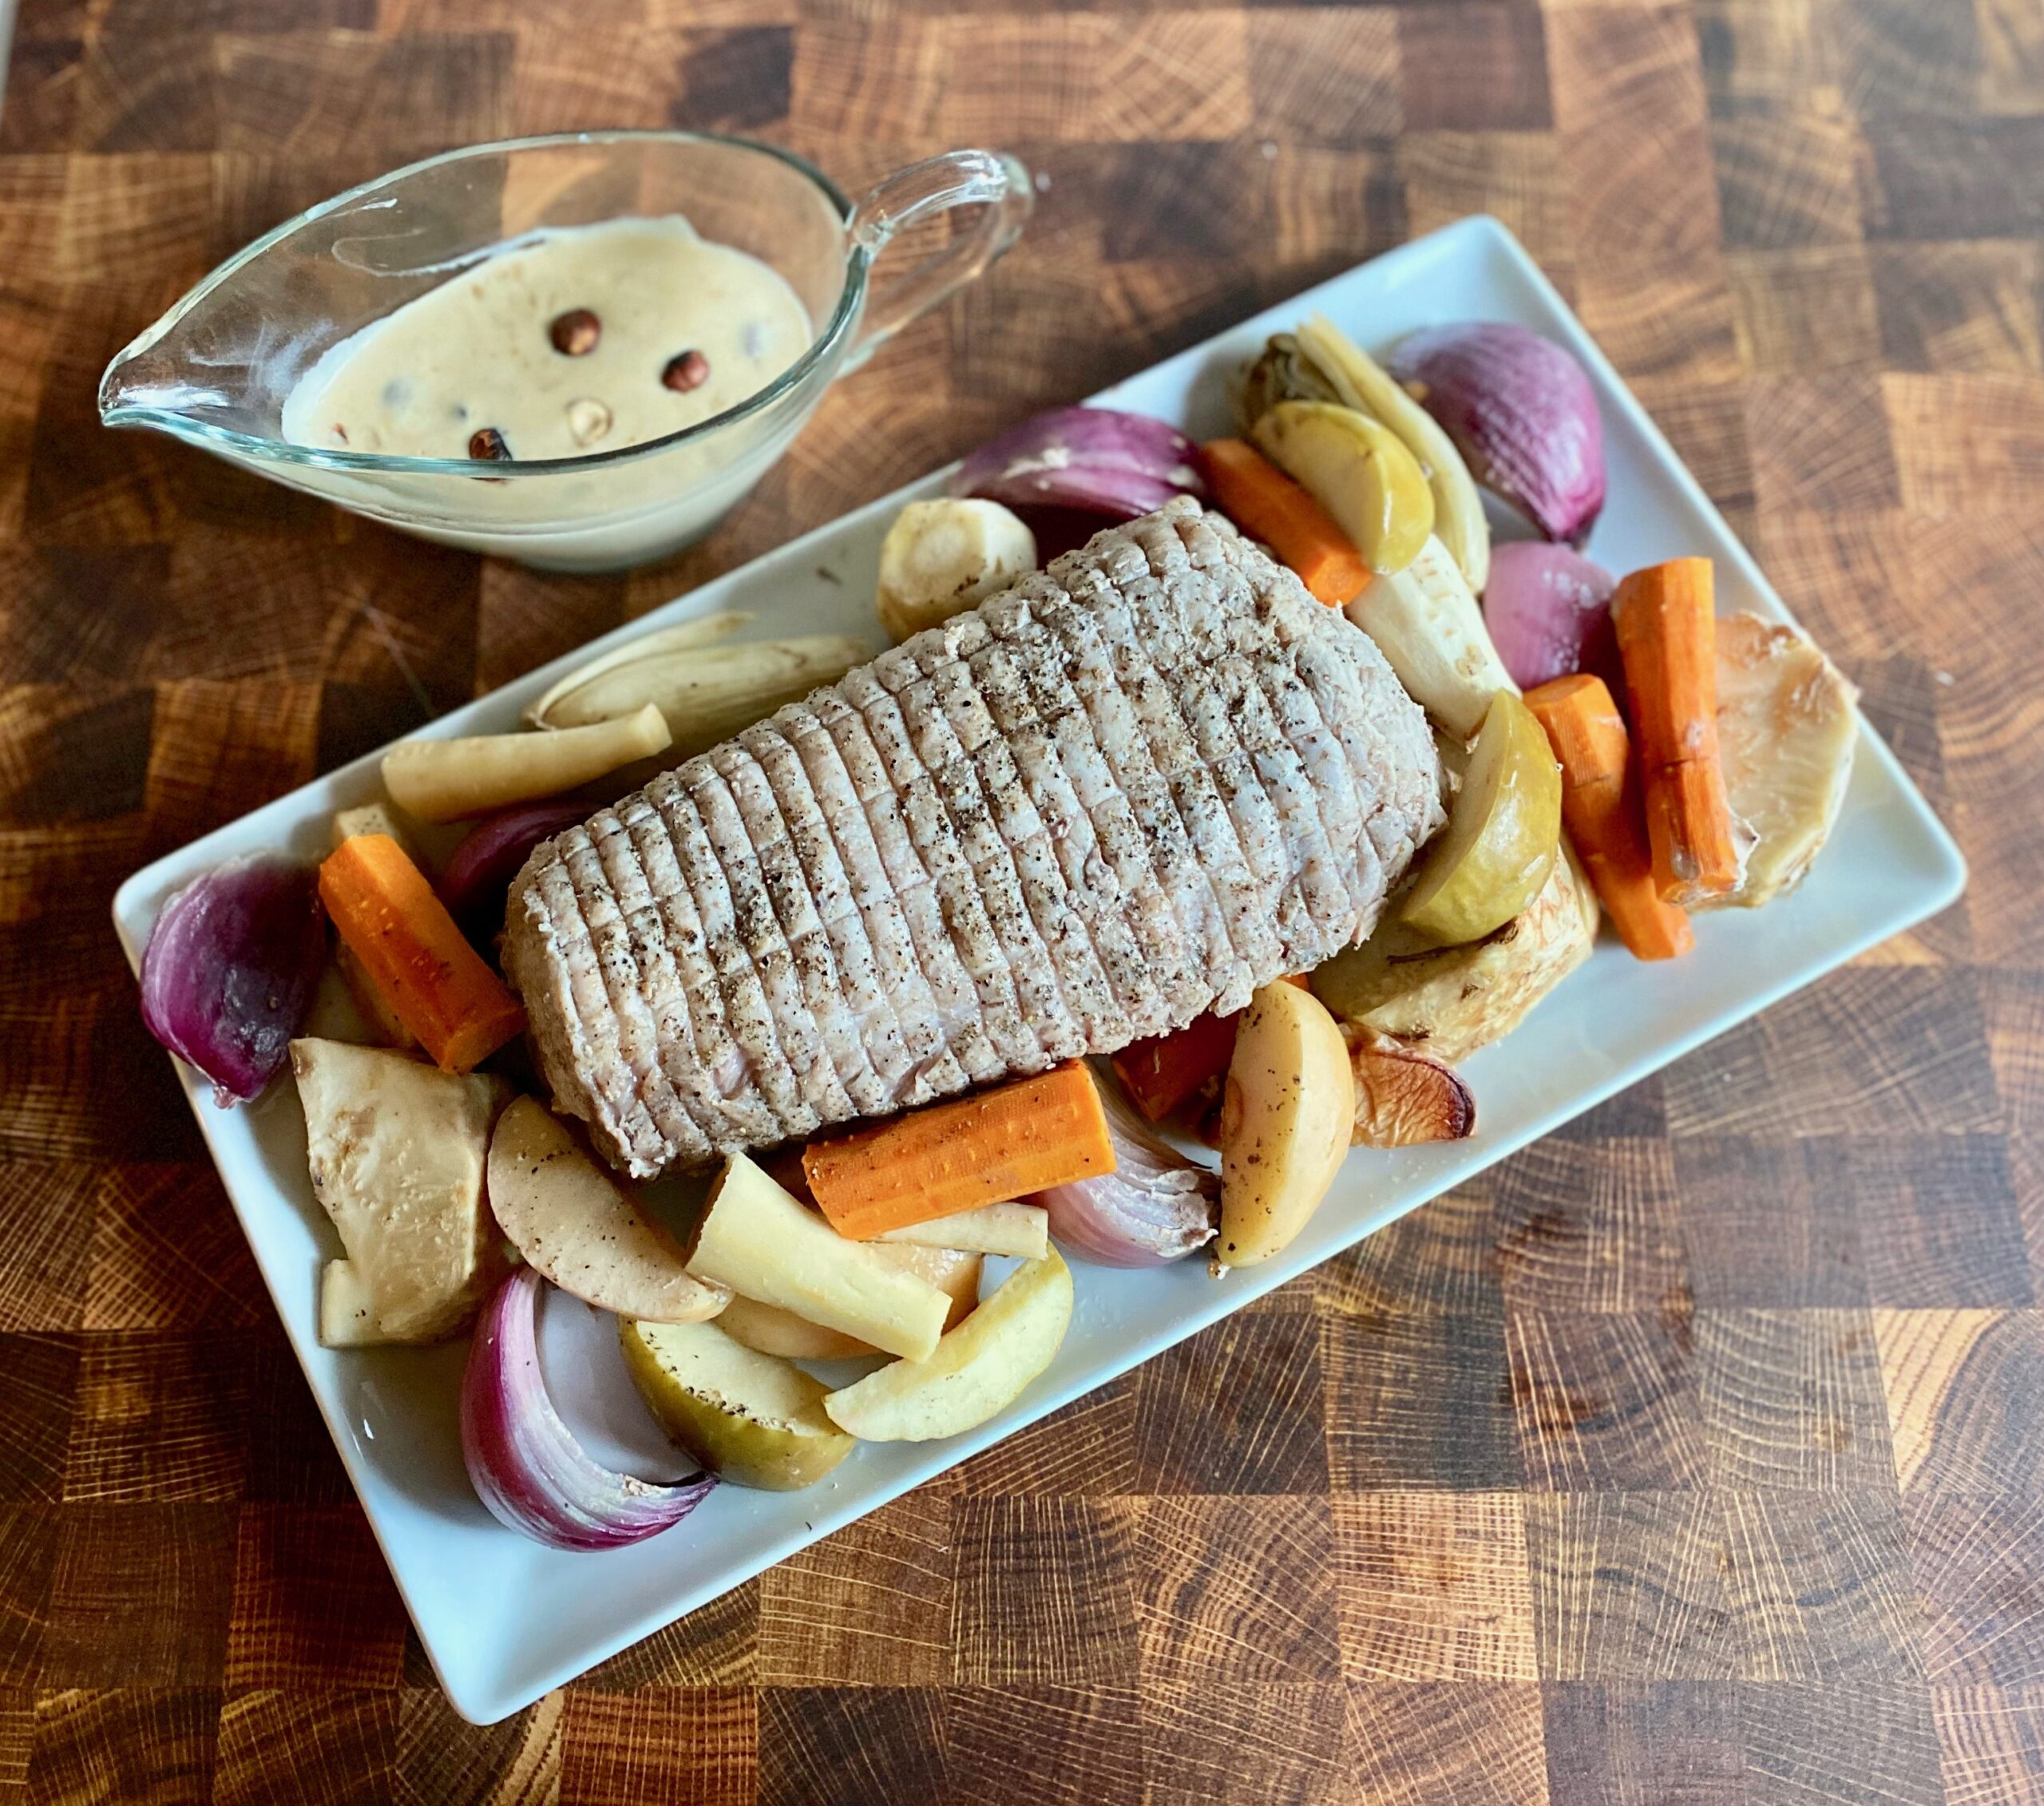 Slow Cooker Pork Roast with Apples and Root Vegetables and Hazelnut Sauce